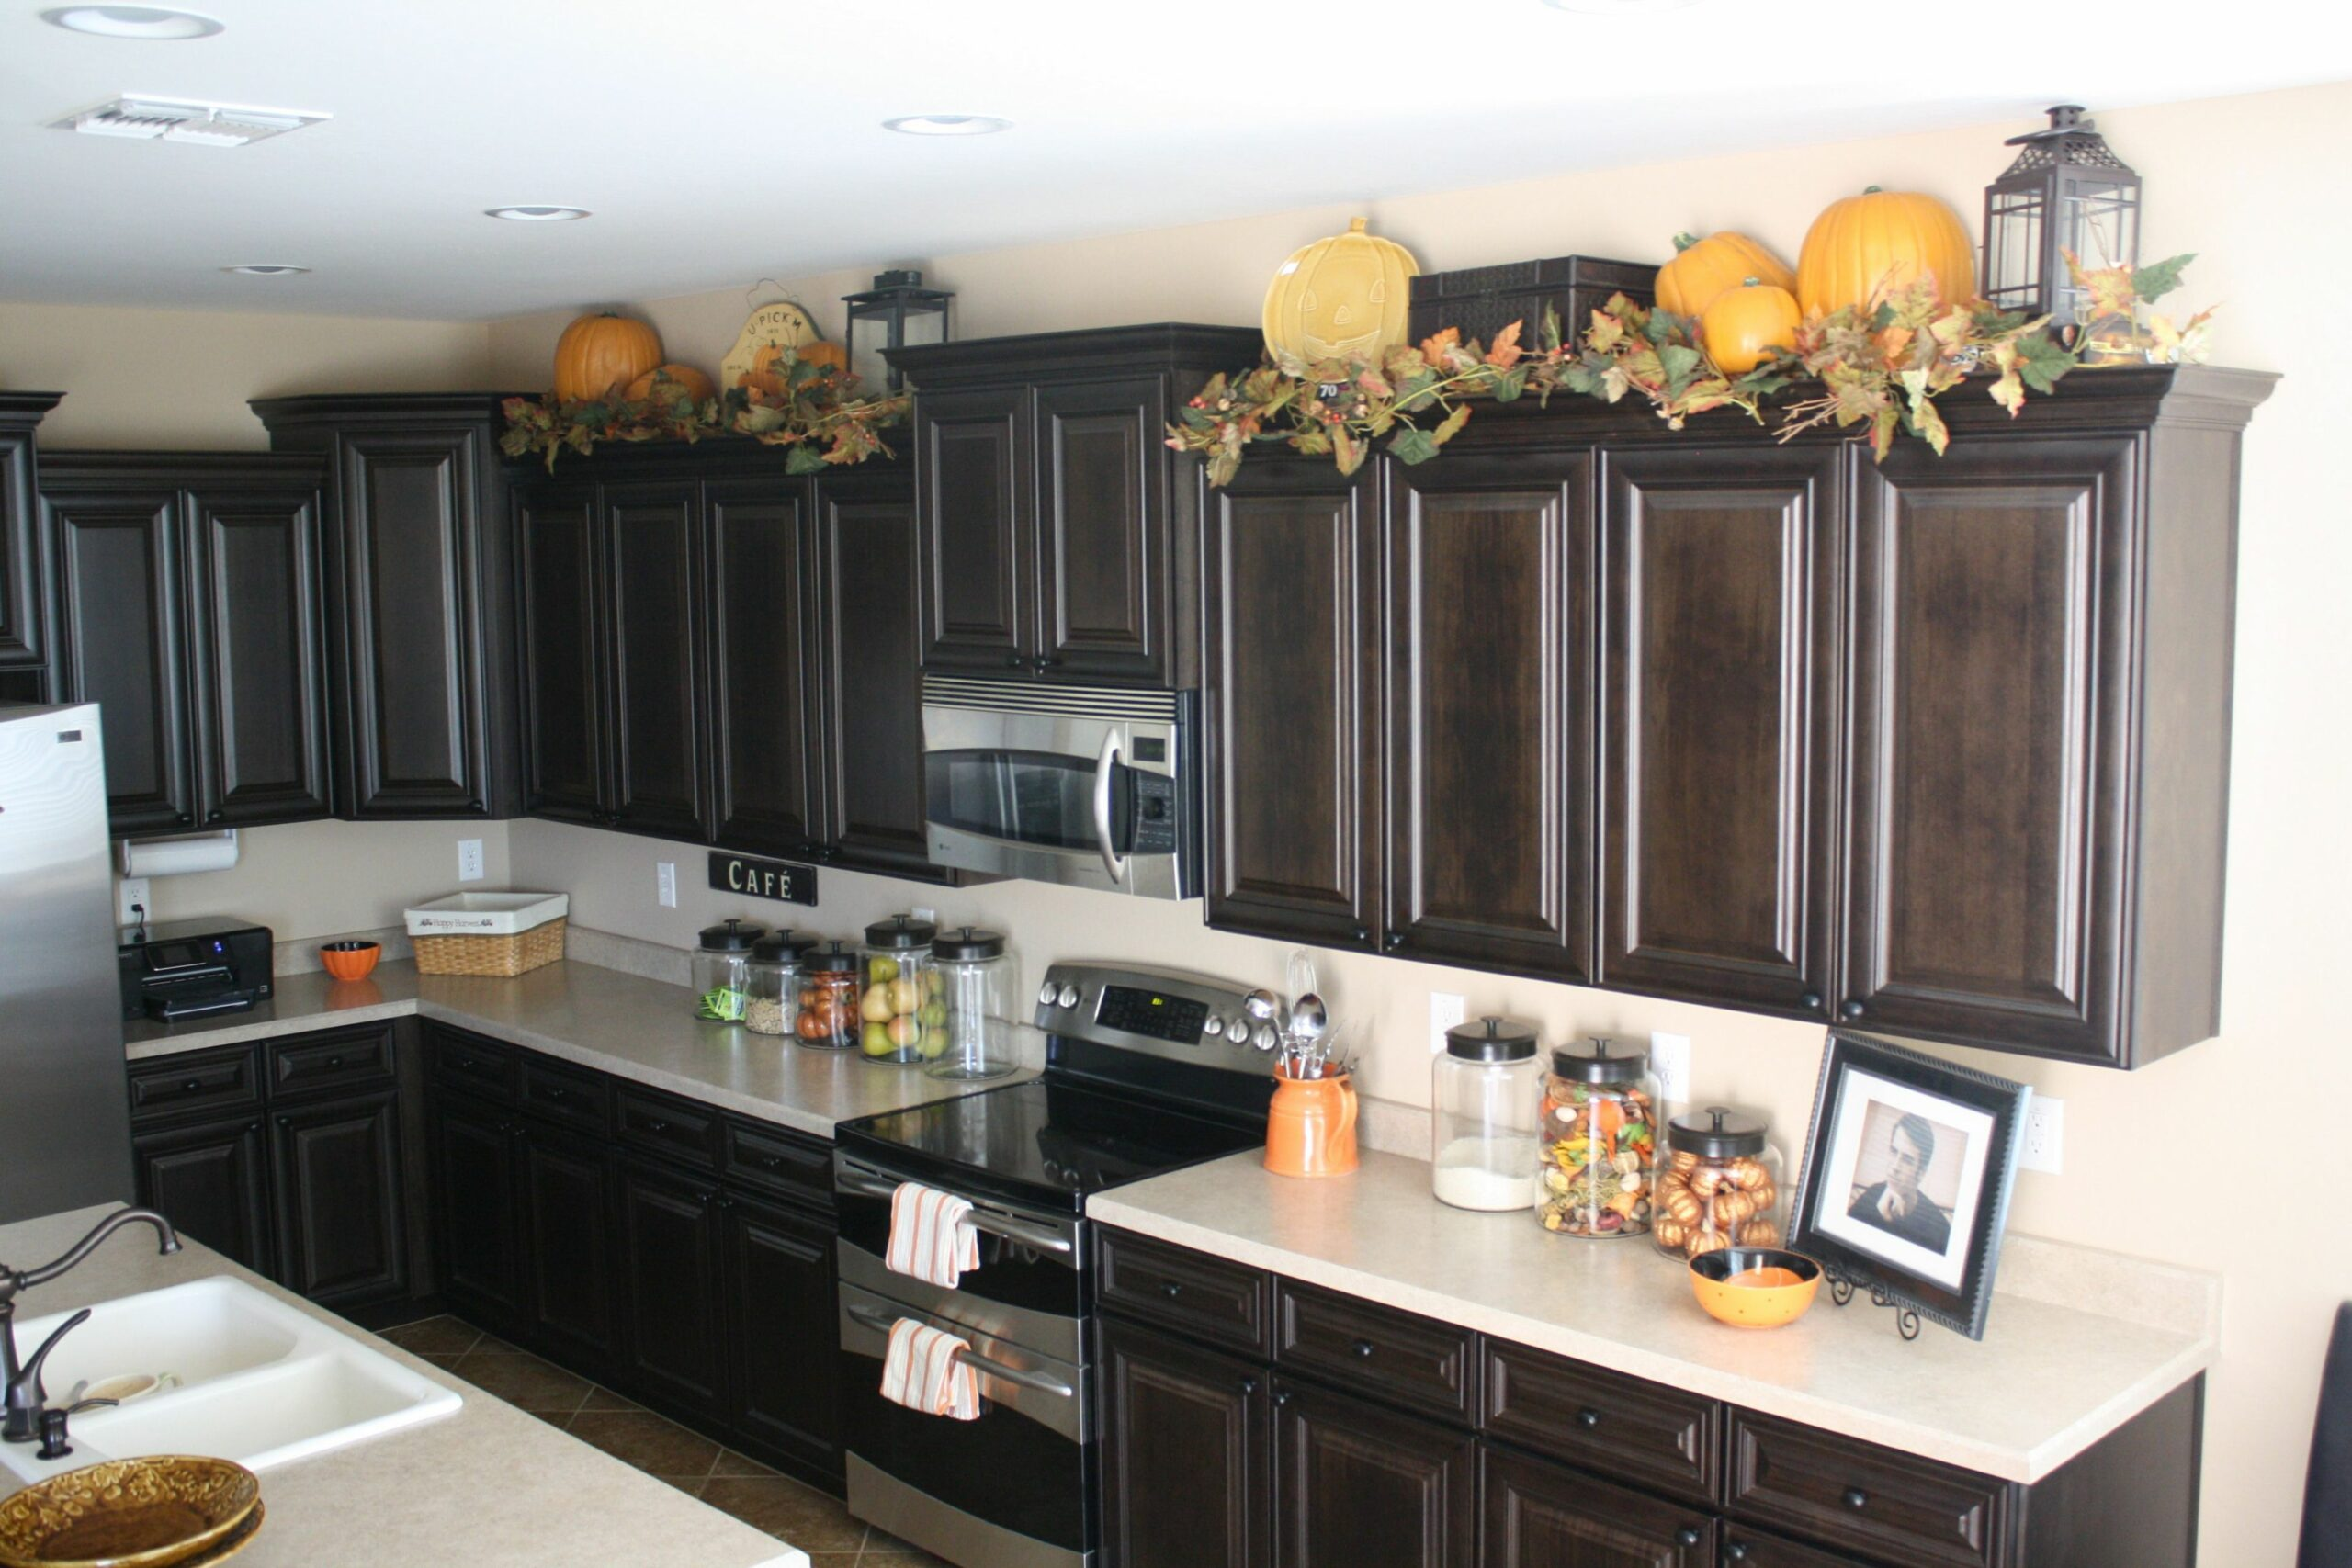 Cabinet Kitchen Above Decor Lanterns On Top Of Extremely Ideas For ...